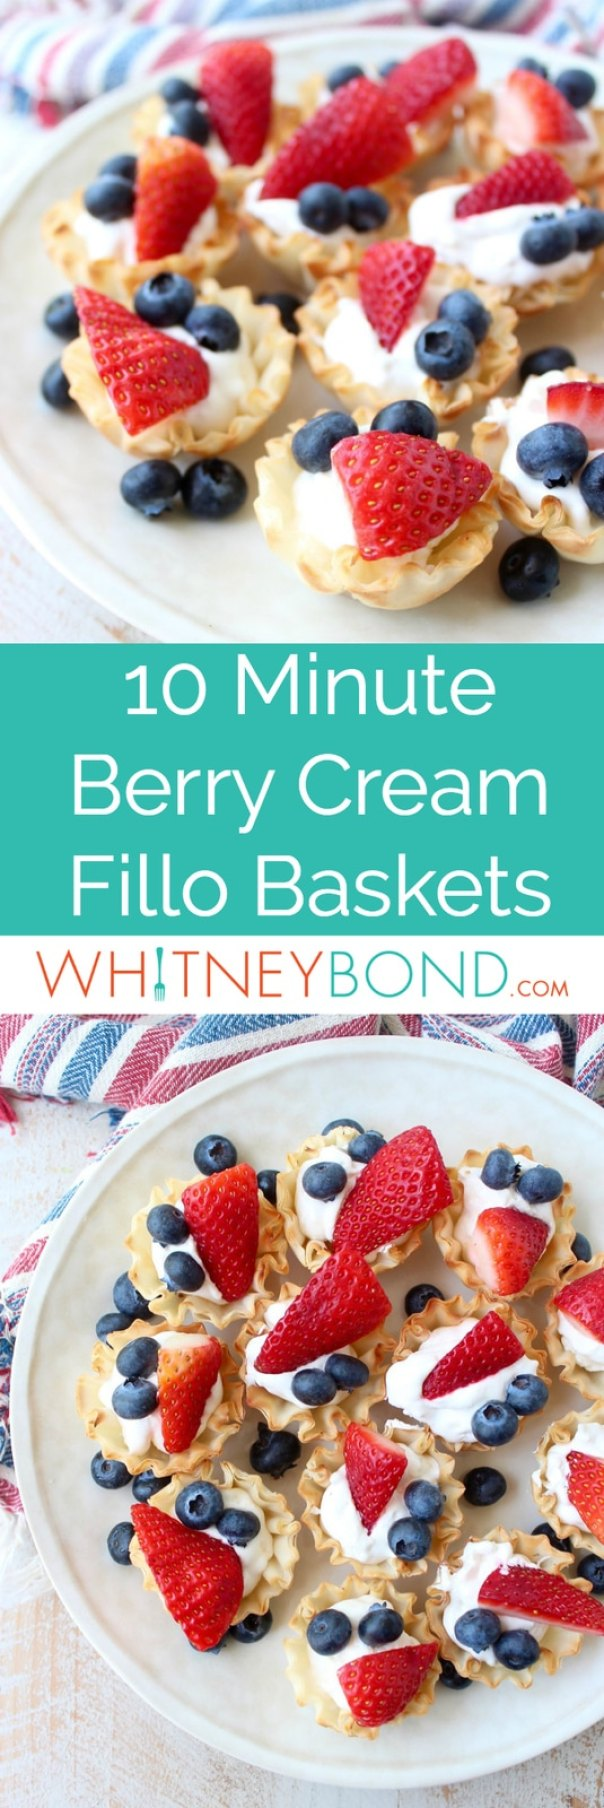 Berry Cream Fillo Baskets are a deliciously simple dessert, made in only 10 minutes, they're perfect for Memorial Day, 4th of July or Summer BBQ's!